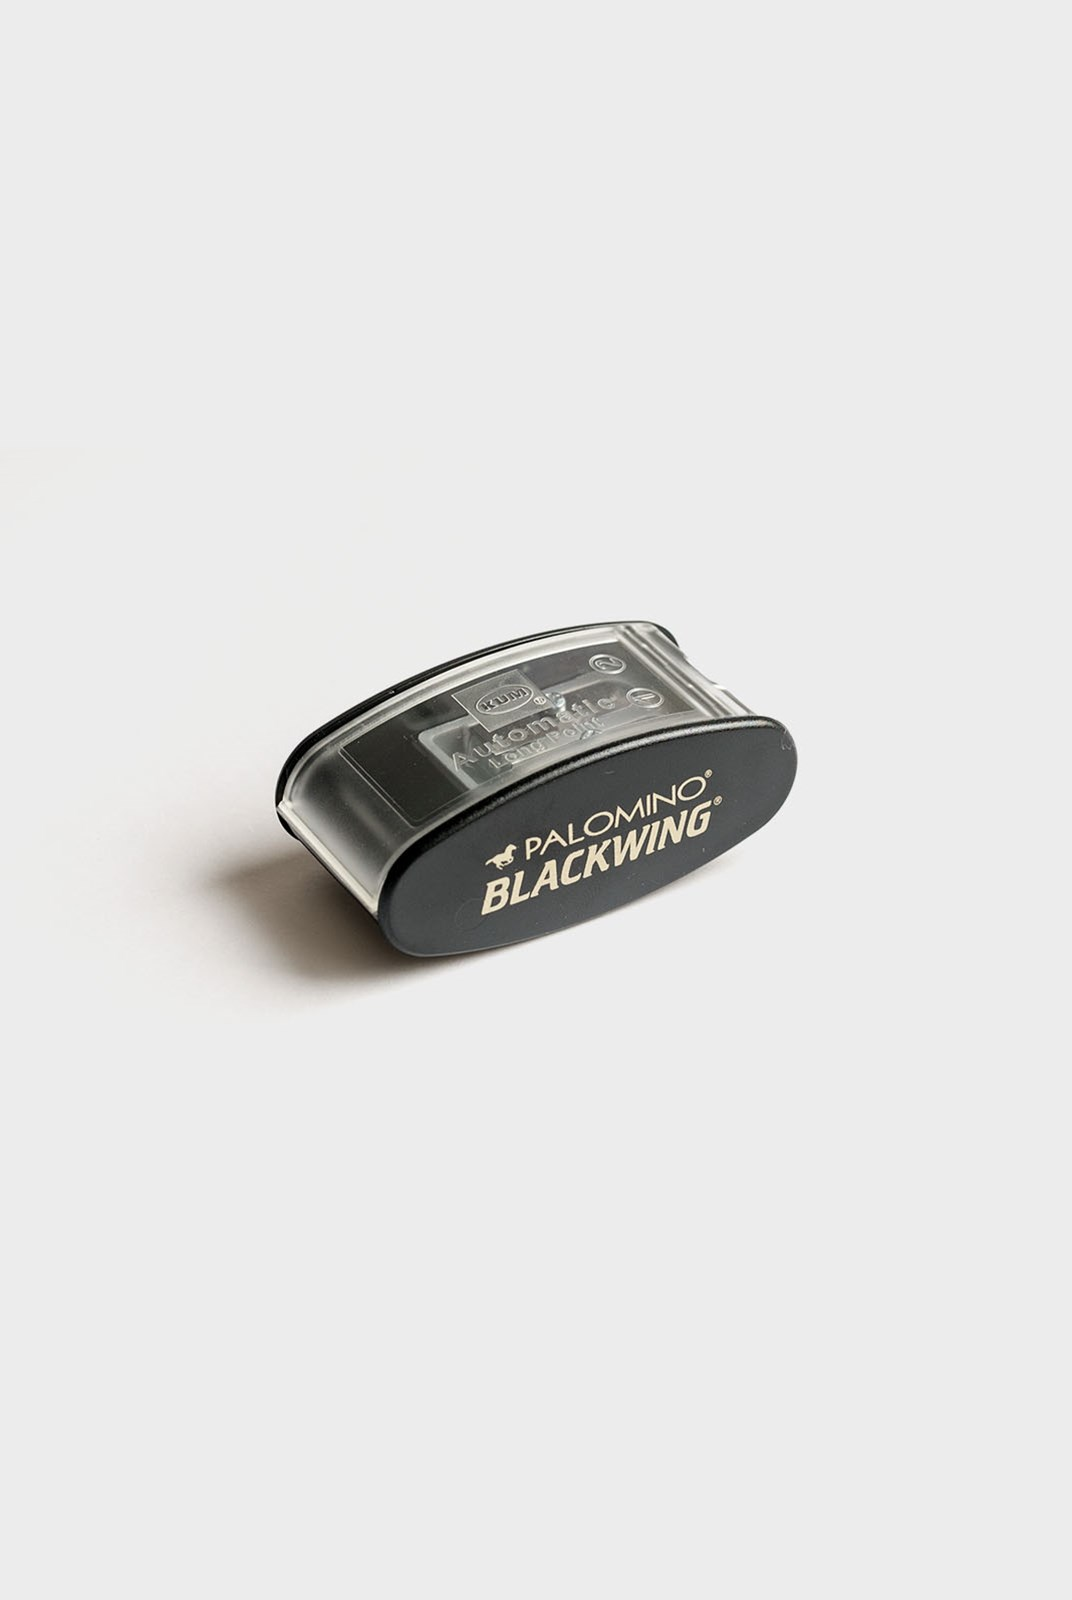 Palomino - KUM Long Point Pencil Sharpener - Black